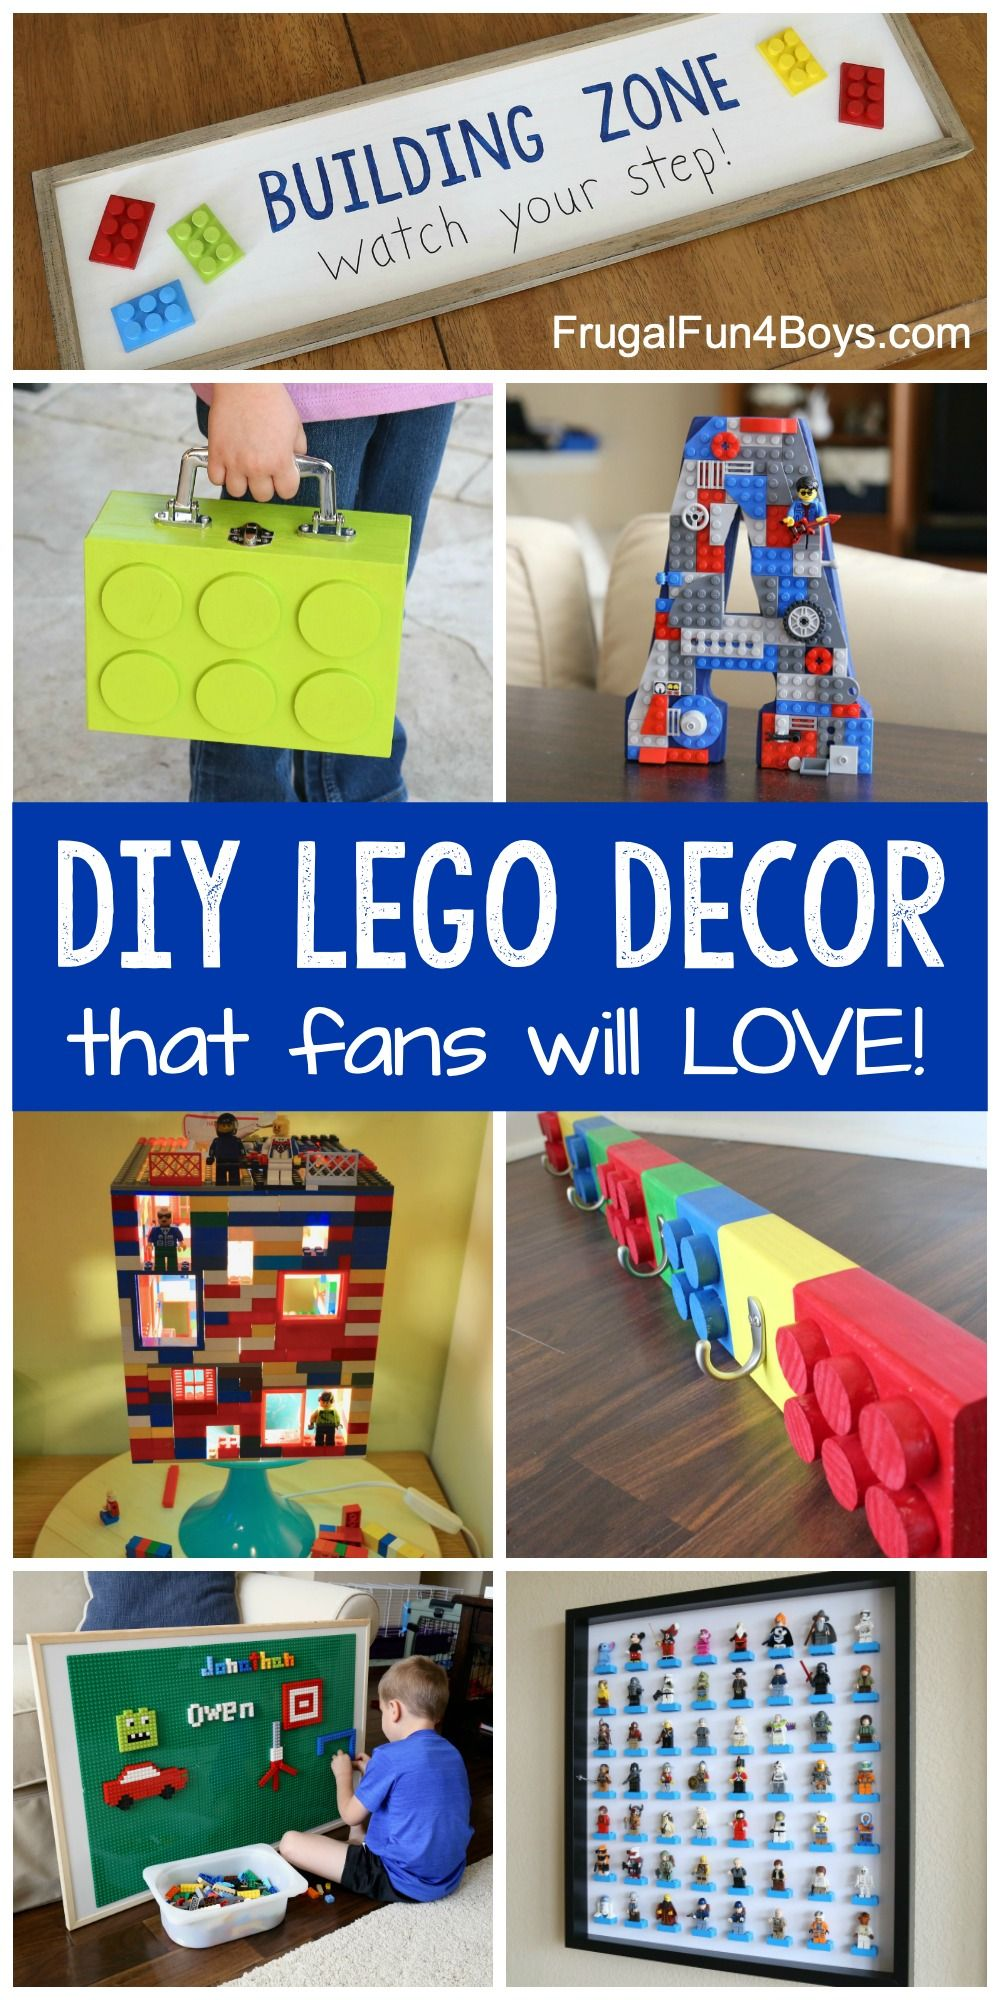 Awesome Diy Lego Crafts And Room Decor Projects Frugal Fun For Boys And Girls Lego Room Decor Lego Room Lego Bedroom Decor